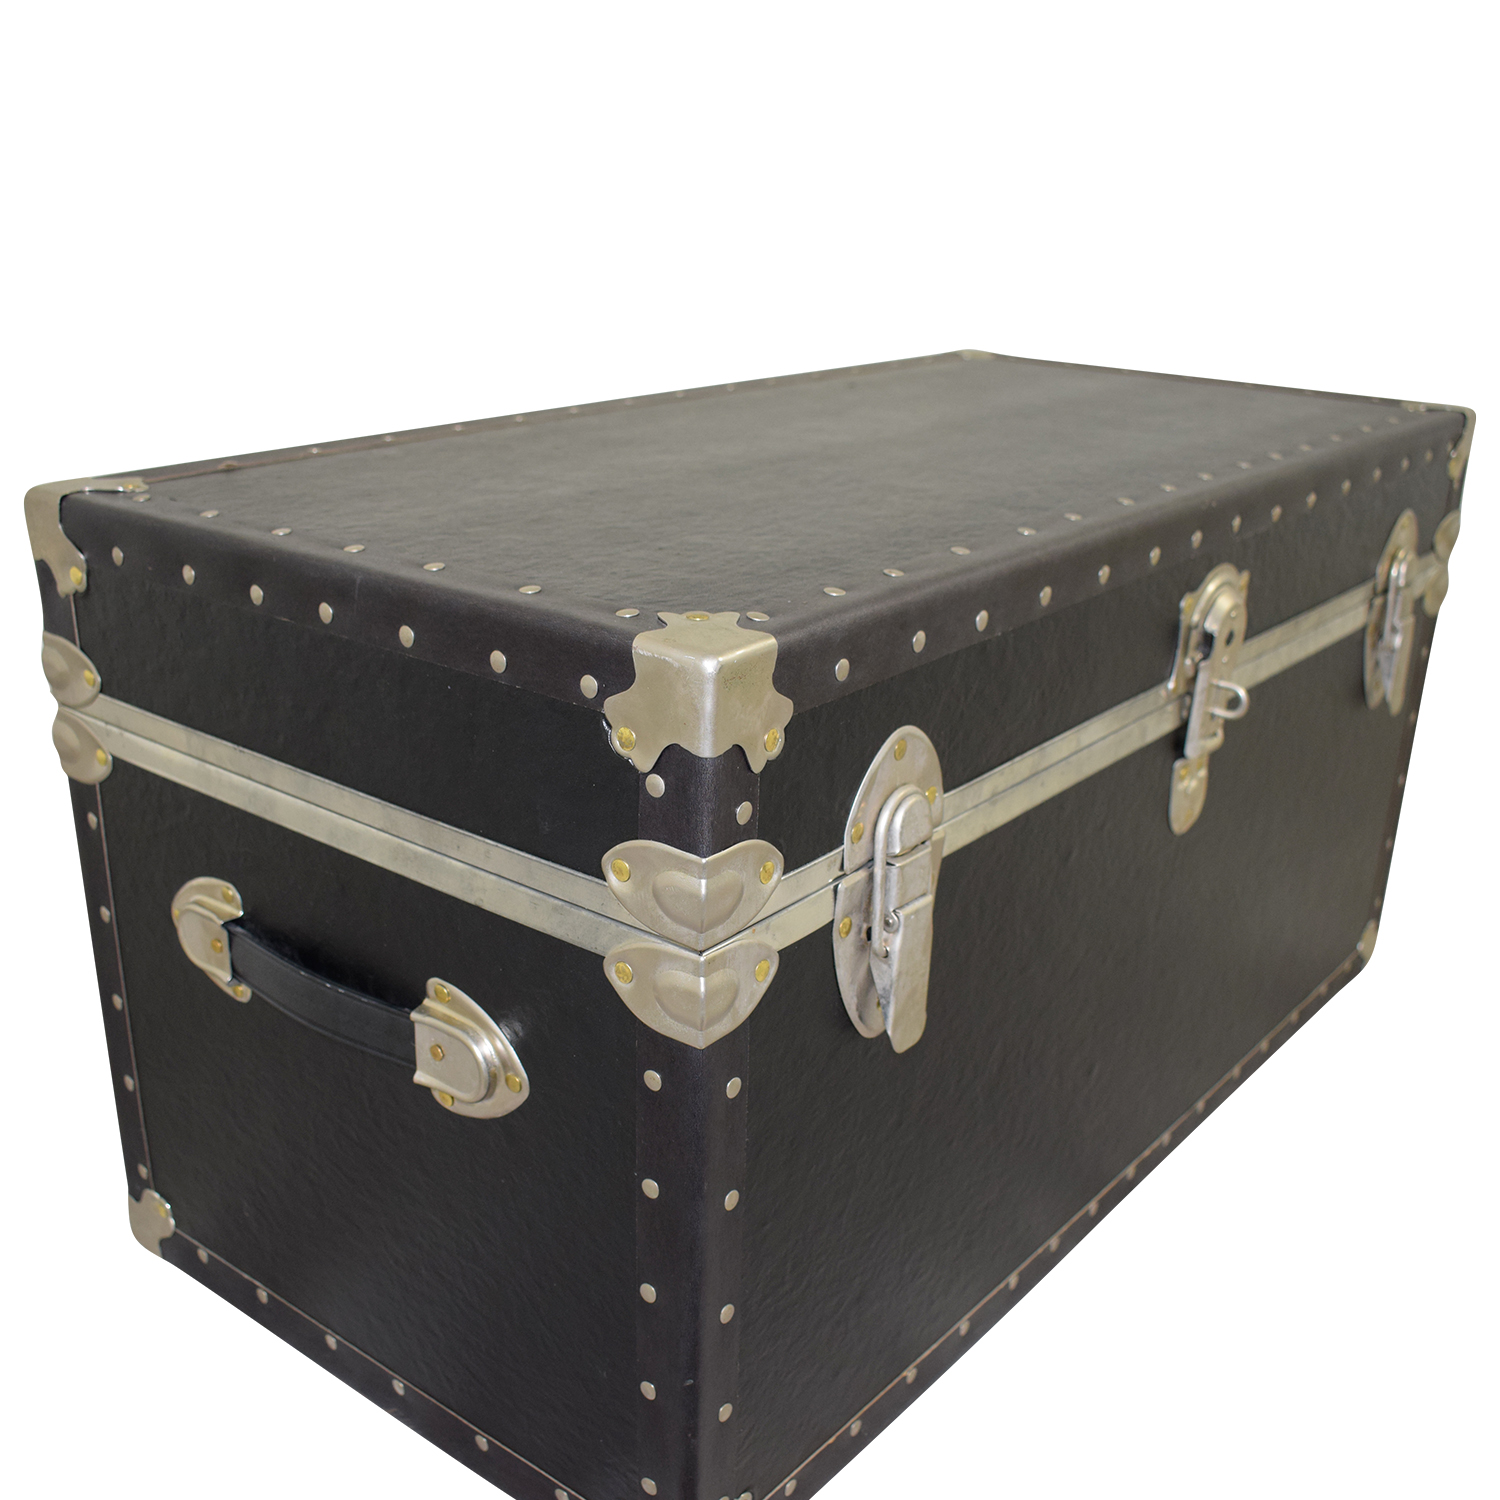 Black & Metal Trunk nj